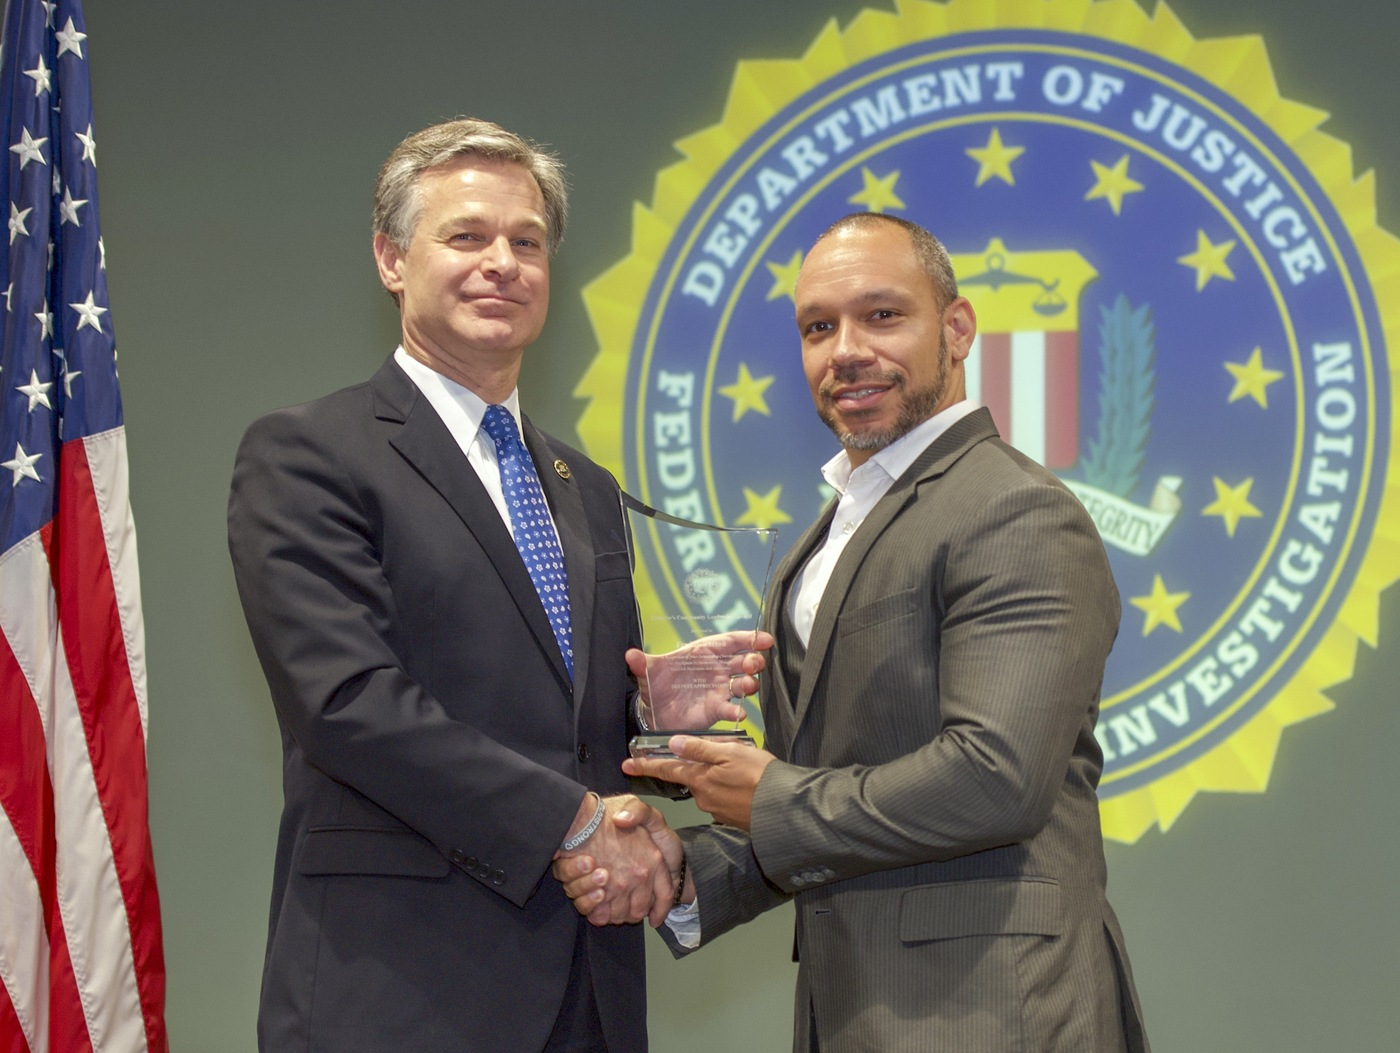 FBI Director Christopher Wray presents Tampa Division recipient Freddy Barton with the Director's Community Leadership Award (DCLA) at a ceremony at FBI Headquarters on May 3, 2019.